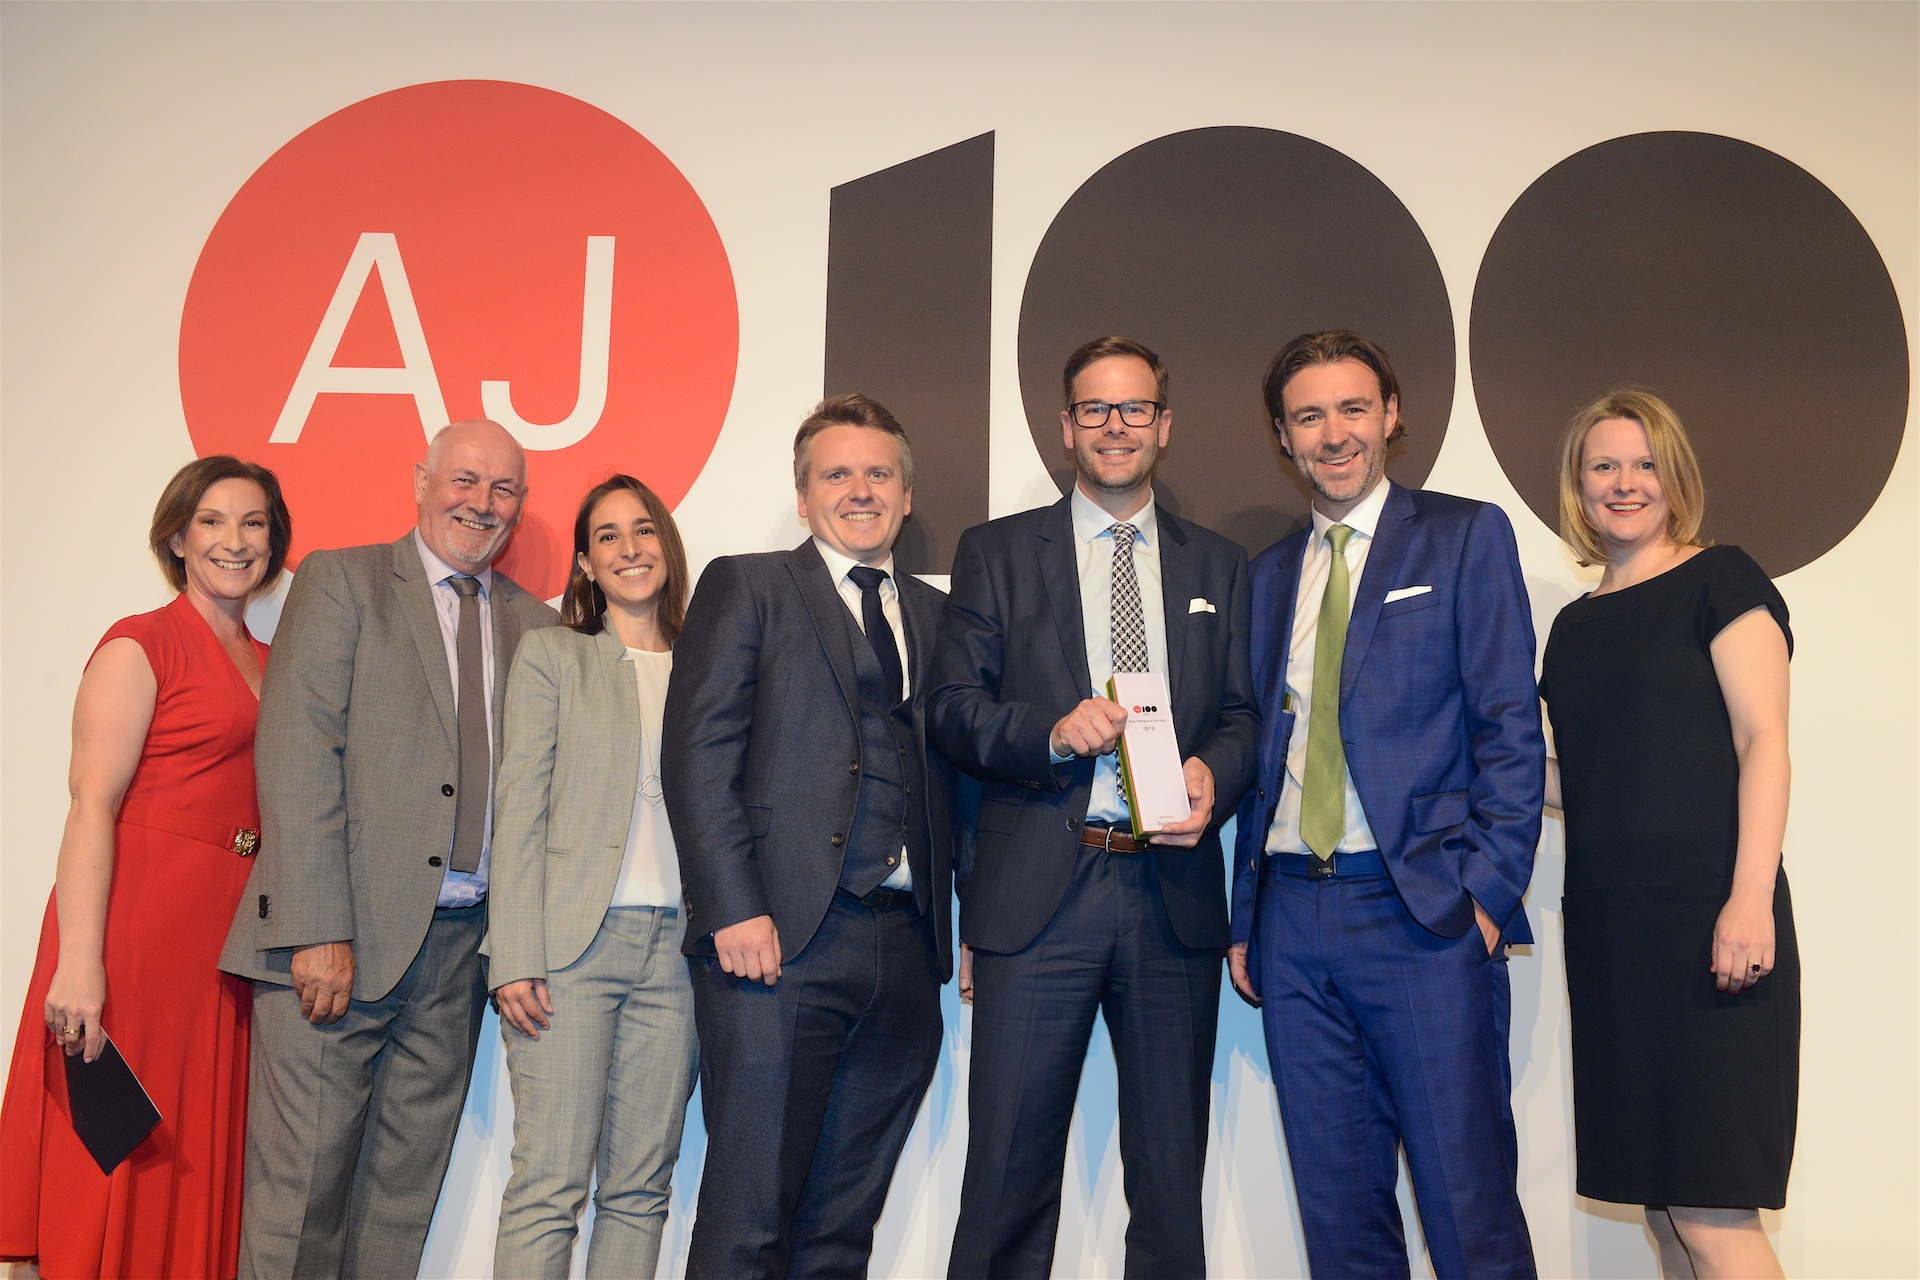 The 2018 AJ100 New Member of the Year Award is presented to rg+p. (L-R) Jayne Arkell of Equitone UK & Ireland, category sponsor; Melvyn King; Victoria Torres; Grant Giblett; Rob Woolston and James Badley (all rg+p) with Emily Booth, acting editor, Architect's Journal.